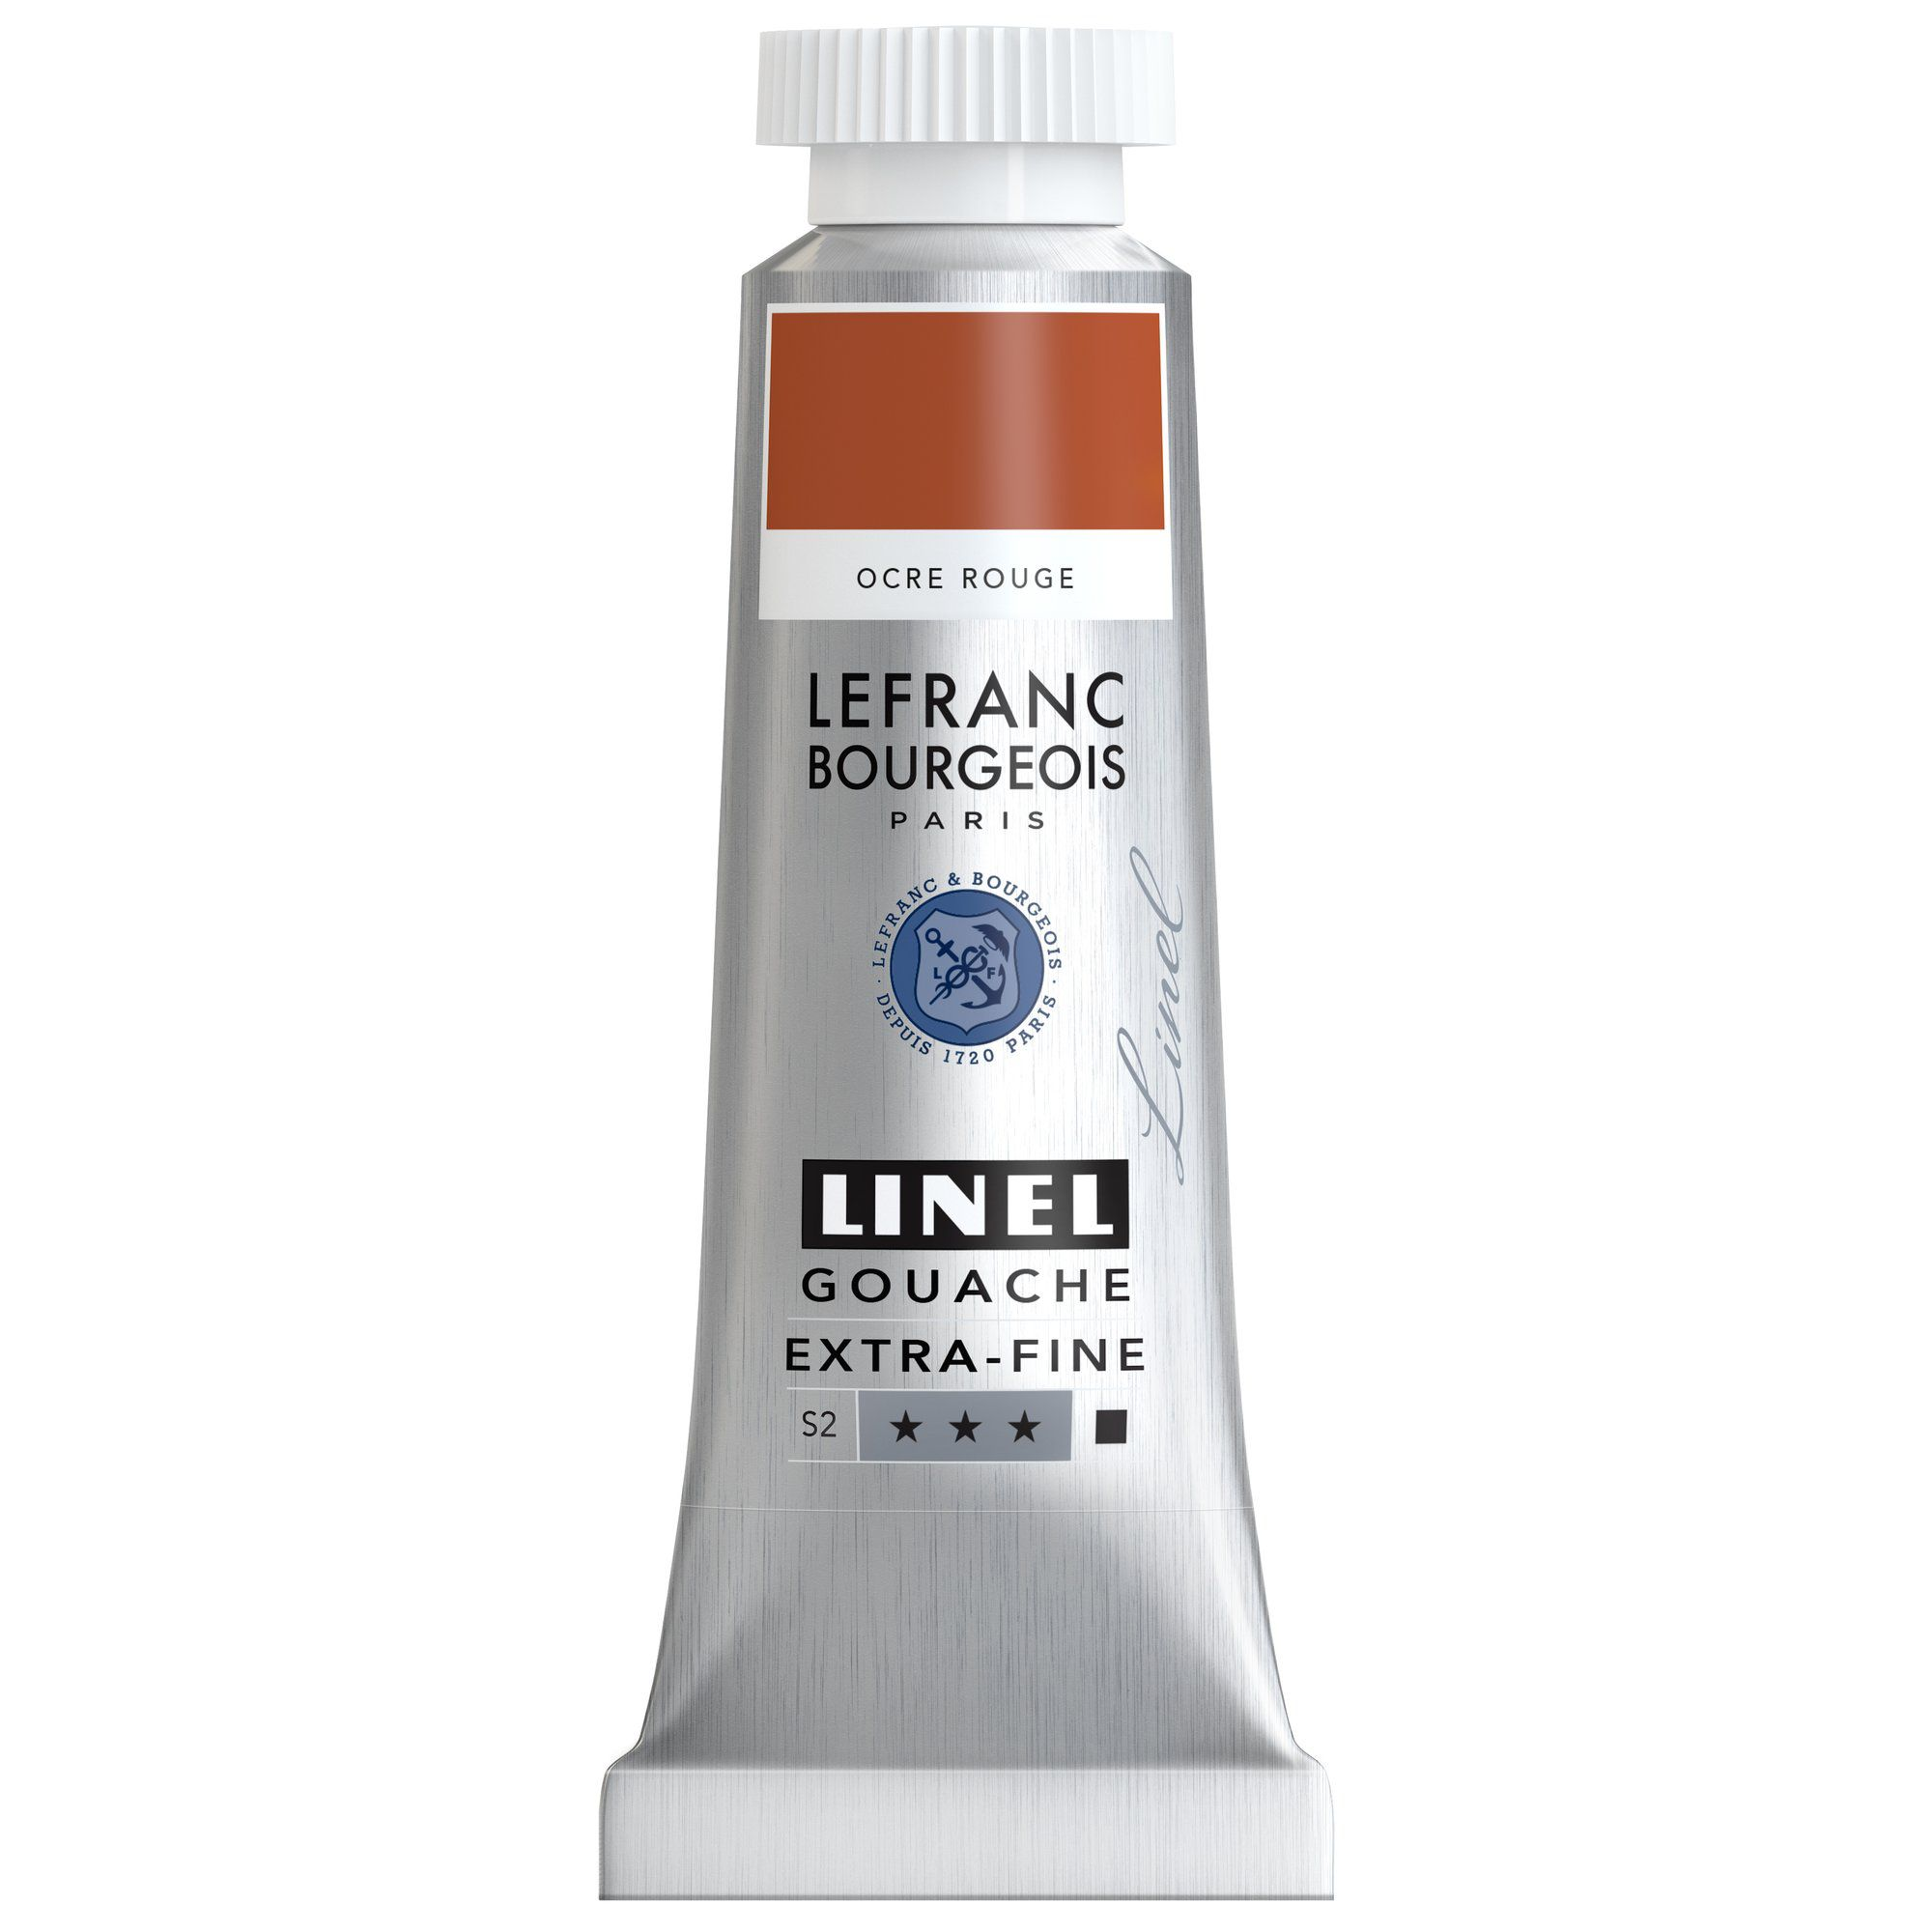 GOUACHE EXTRA-FINE LINEL 14ML OCRE ROUGE